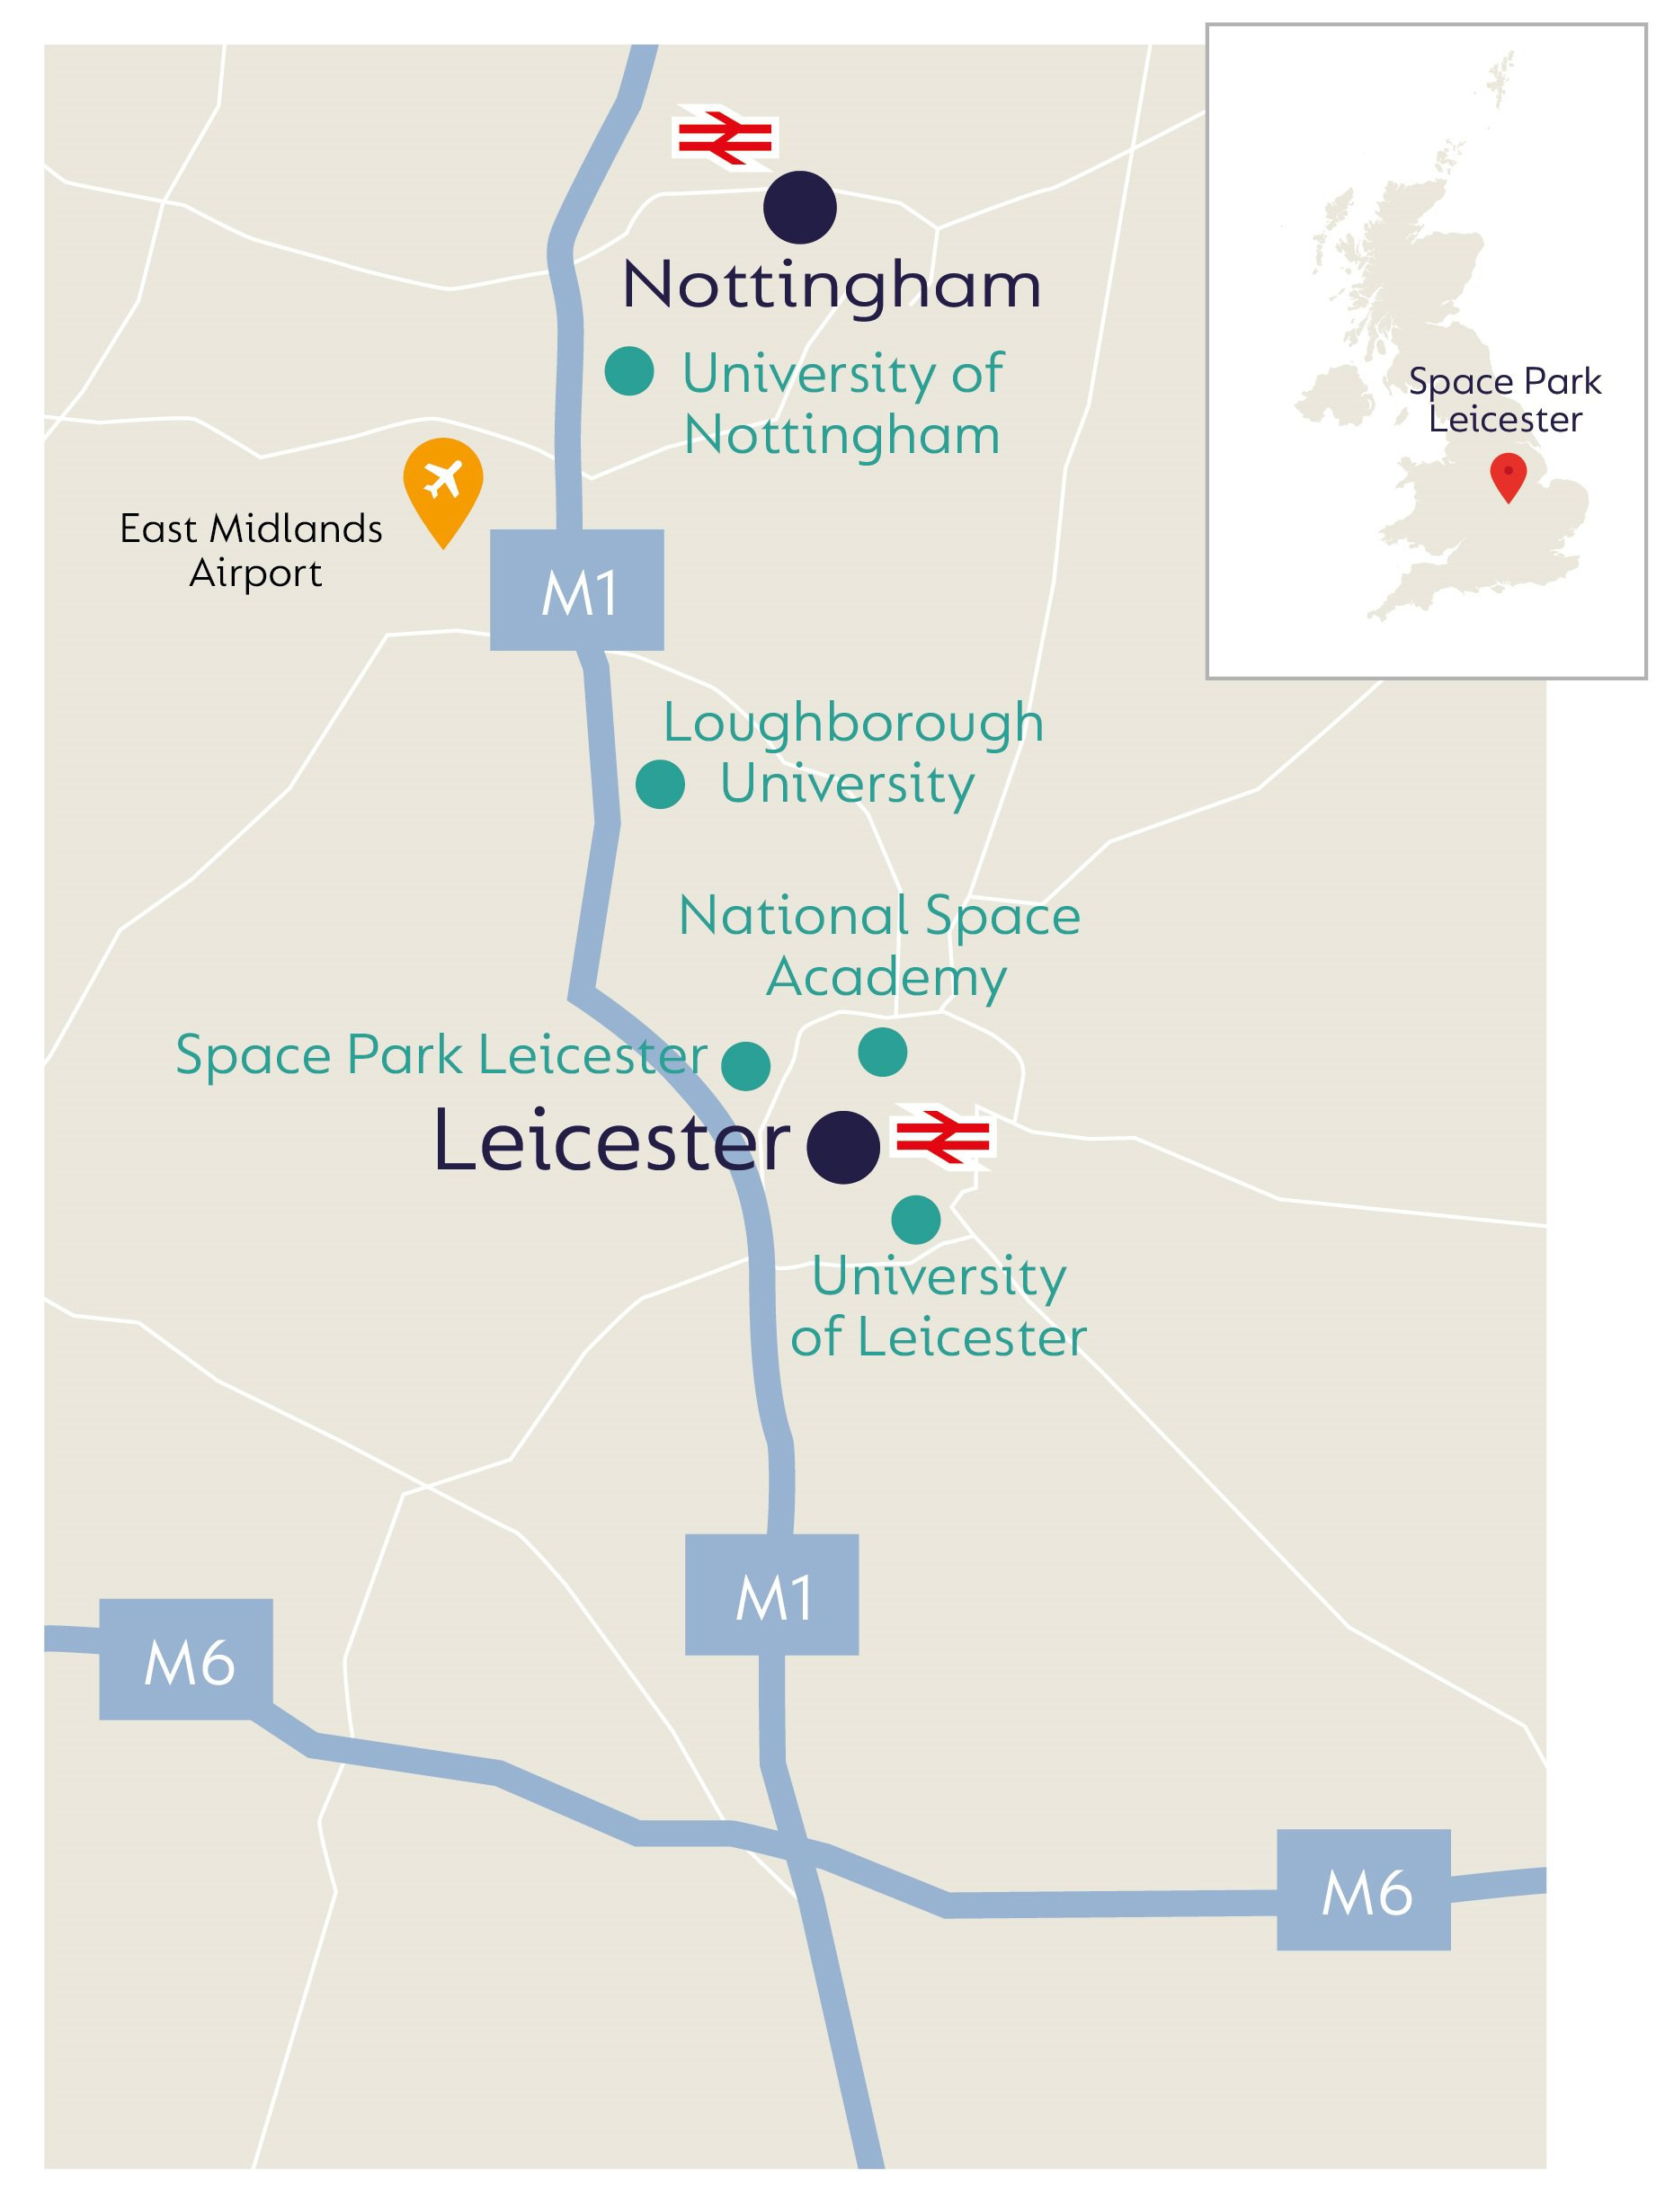 Image of UK map showing the infrastructure and facilities in the Leicester region that support the 